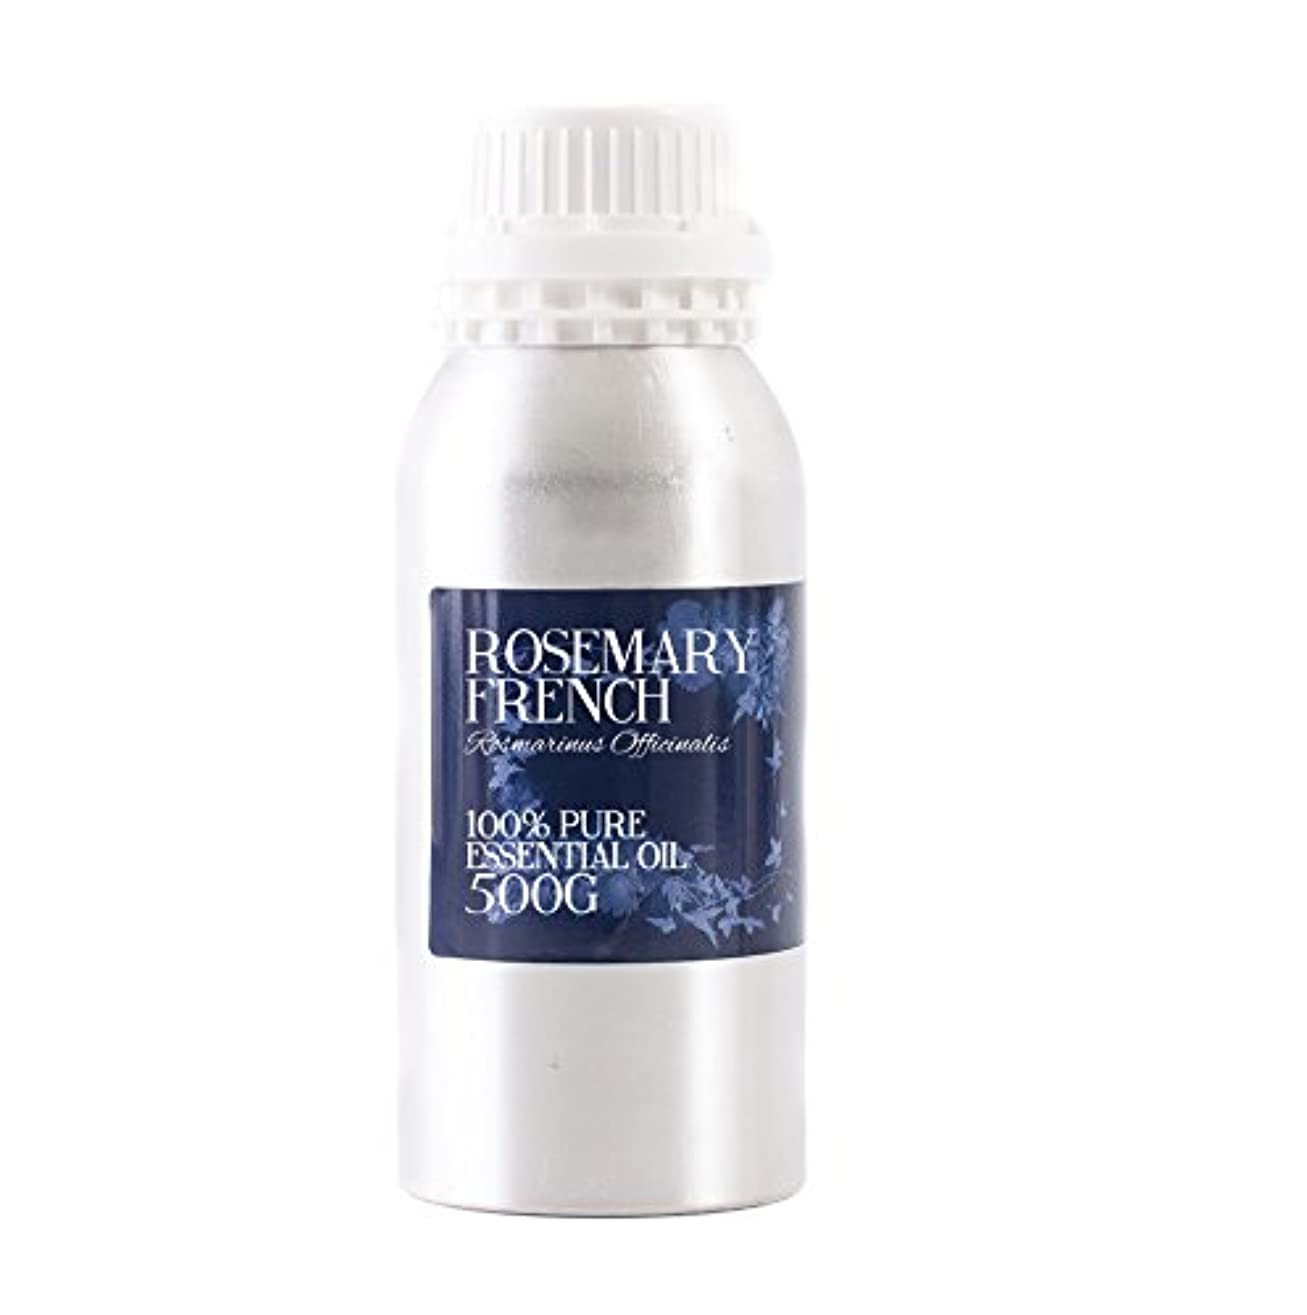 ソーシャル大使館悲しいことにMystic Moments | Rosemary French Essential Oil - 500g - 100% Pure